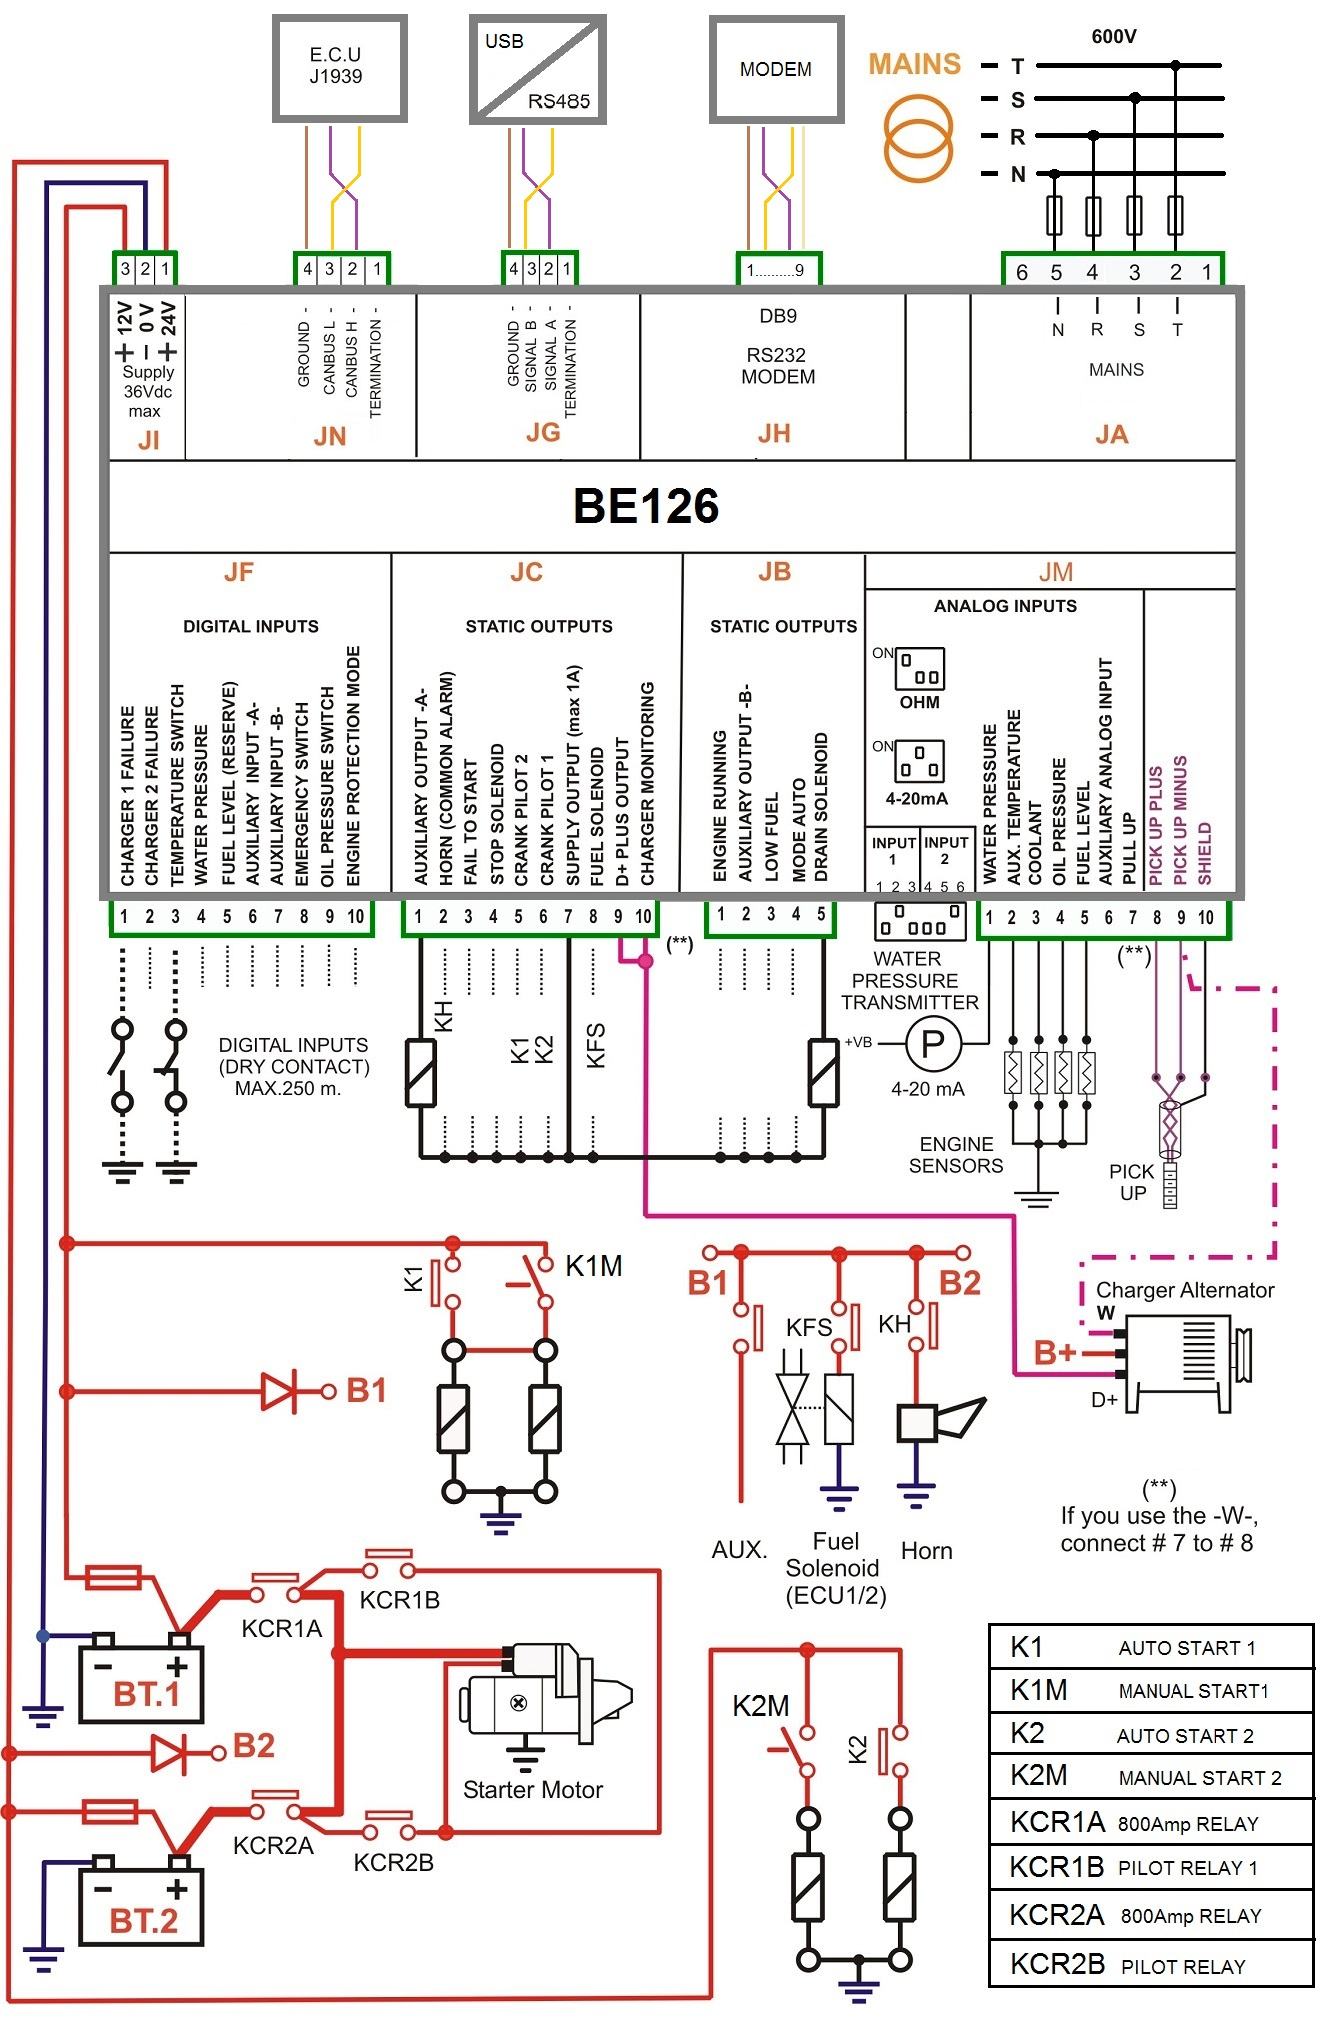 fire pump controller wiring diagram genset controller rh bernini design com wiring a pump backwards wiring a pump start relay